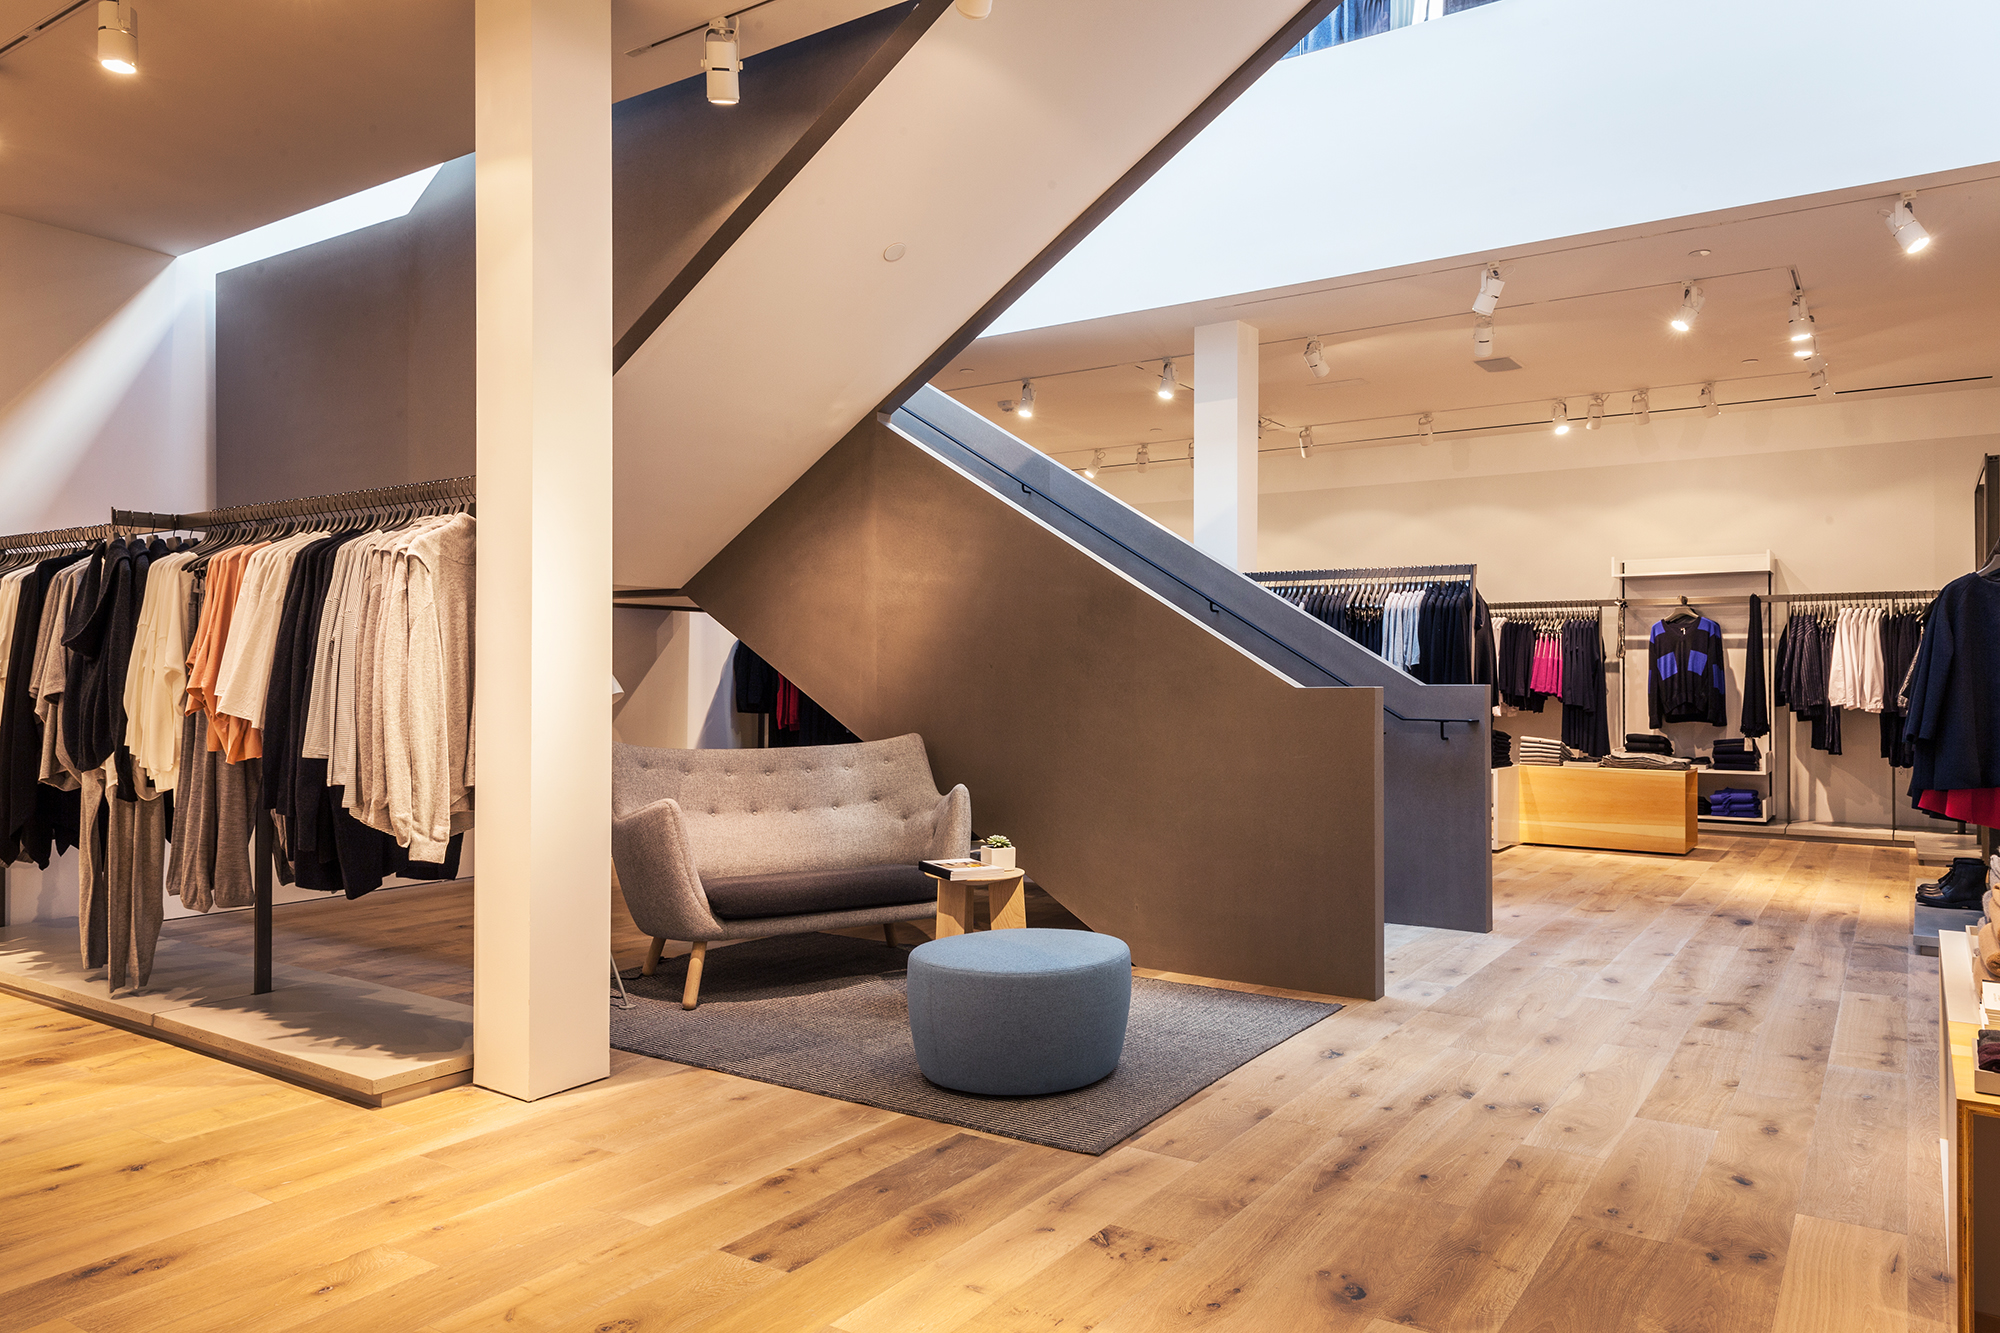 Opening Day of the new, COS store in Beverly Hills, California, photographed on October 28th, 2014